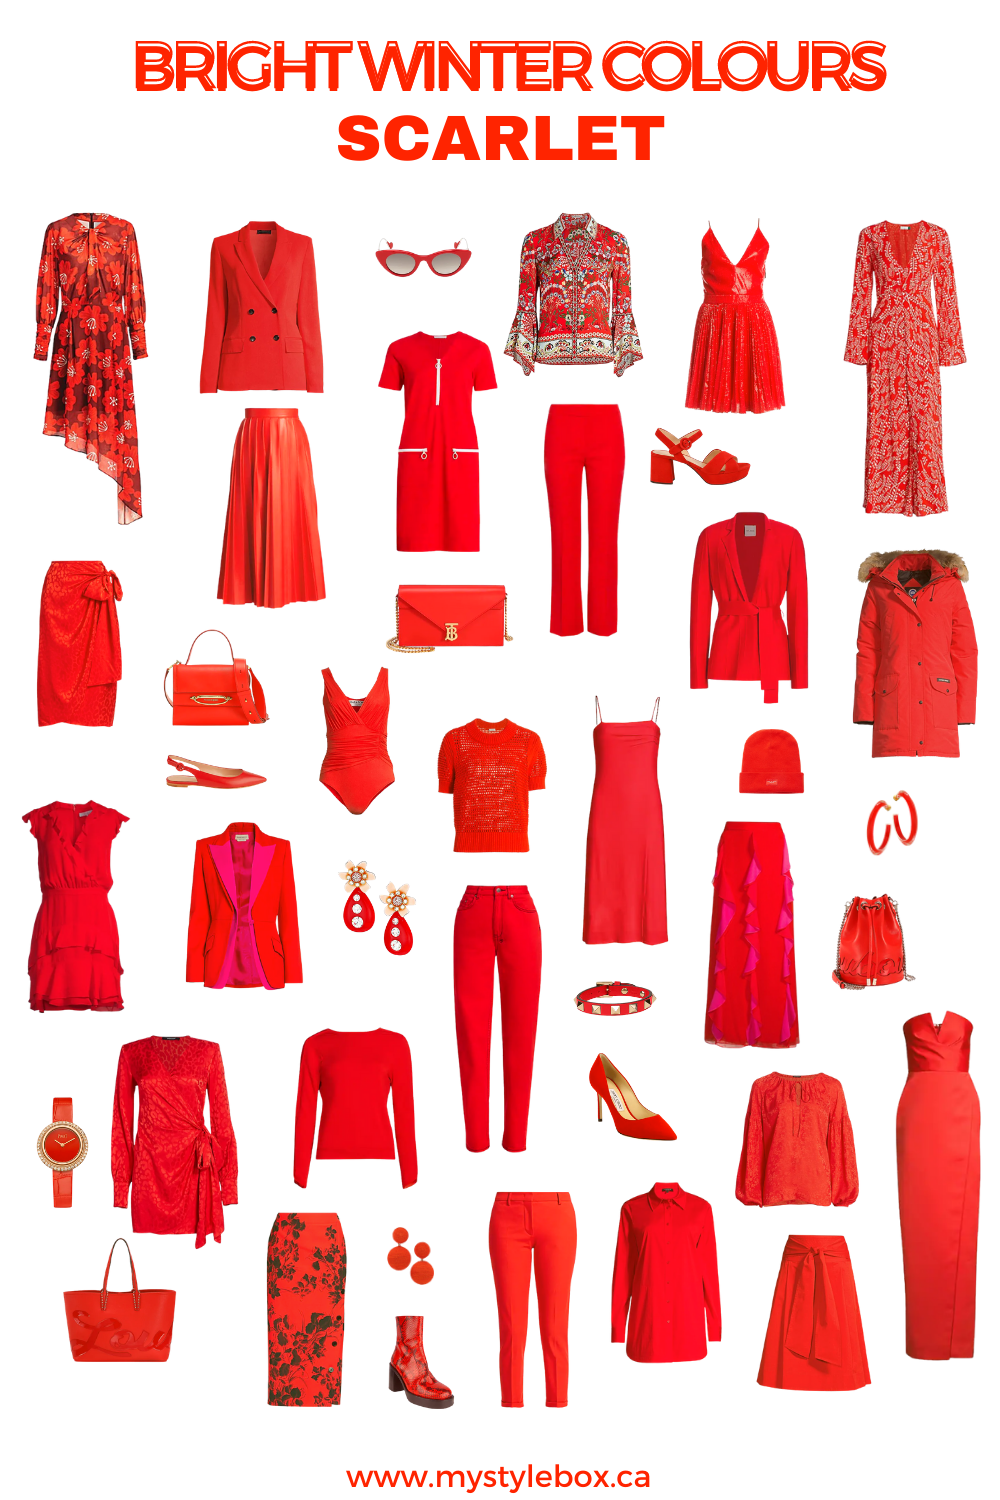 BRIGHT WINTER COLOURS SCARLET